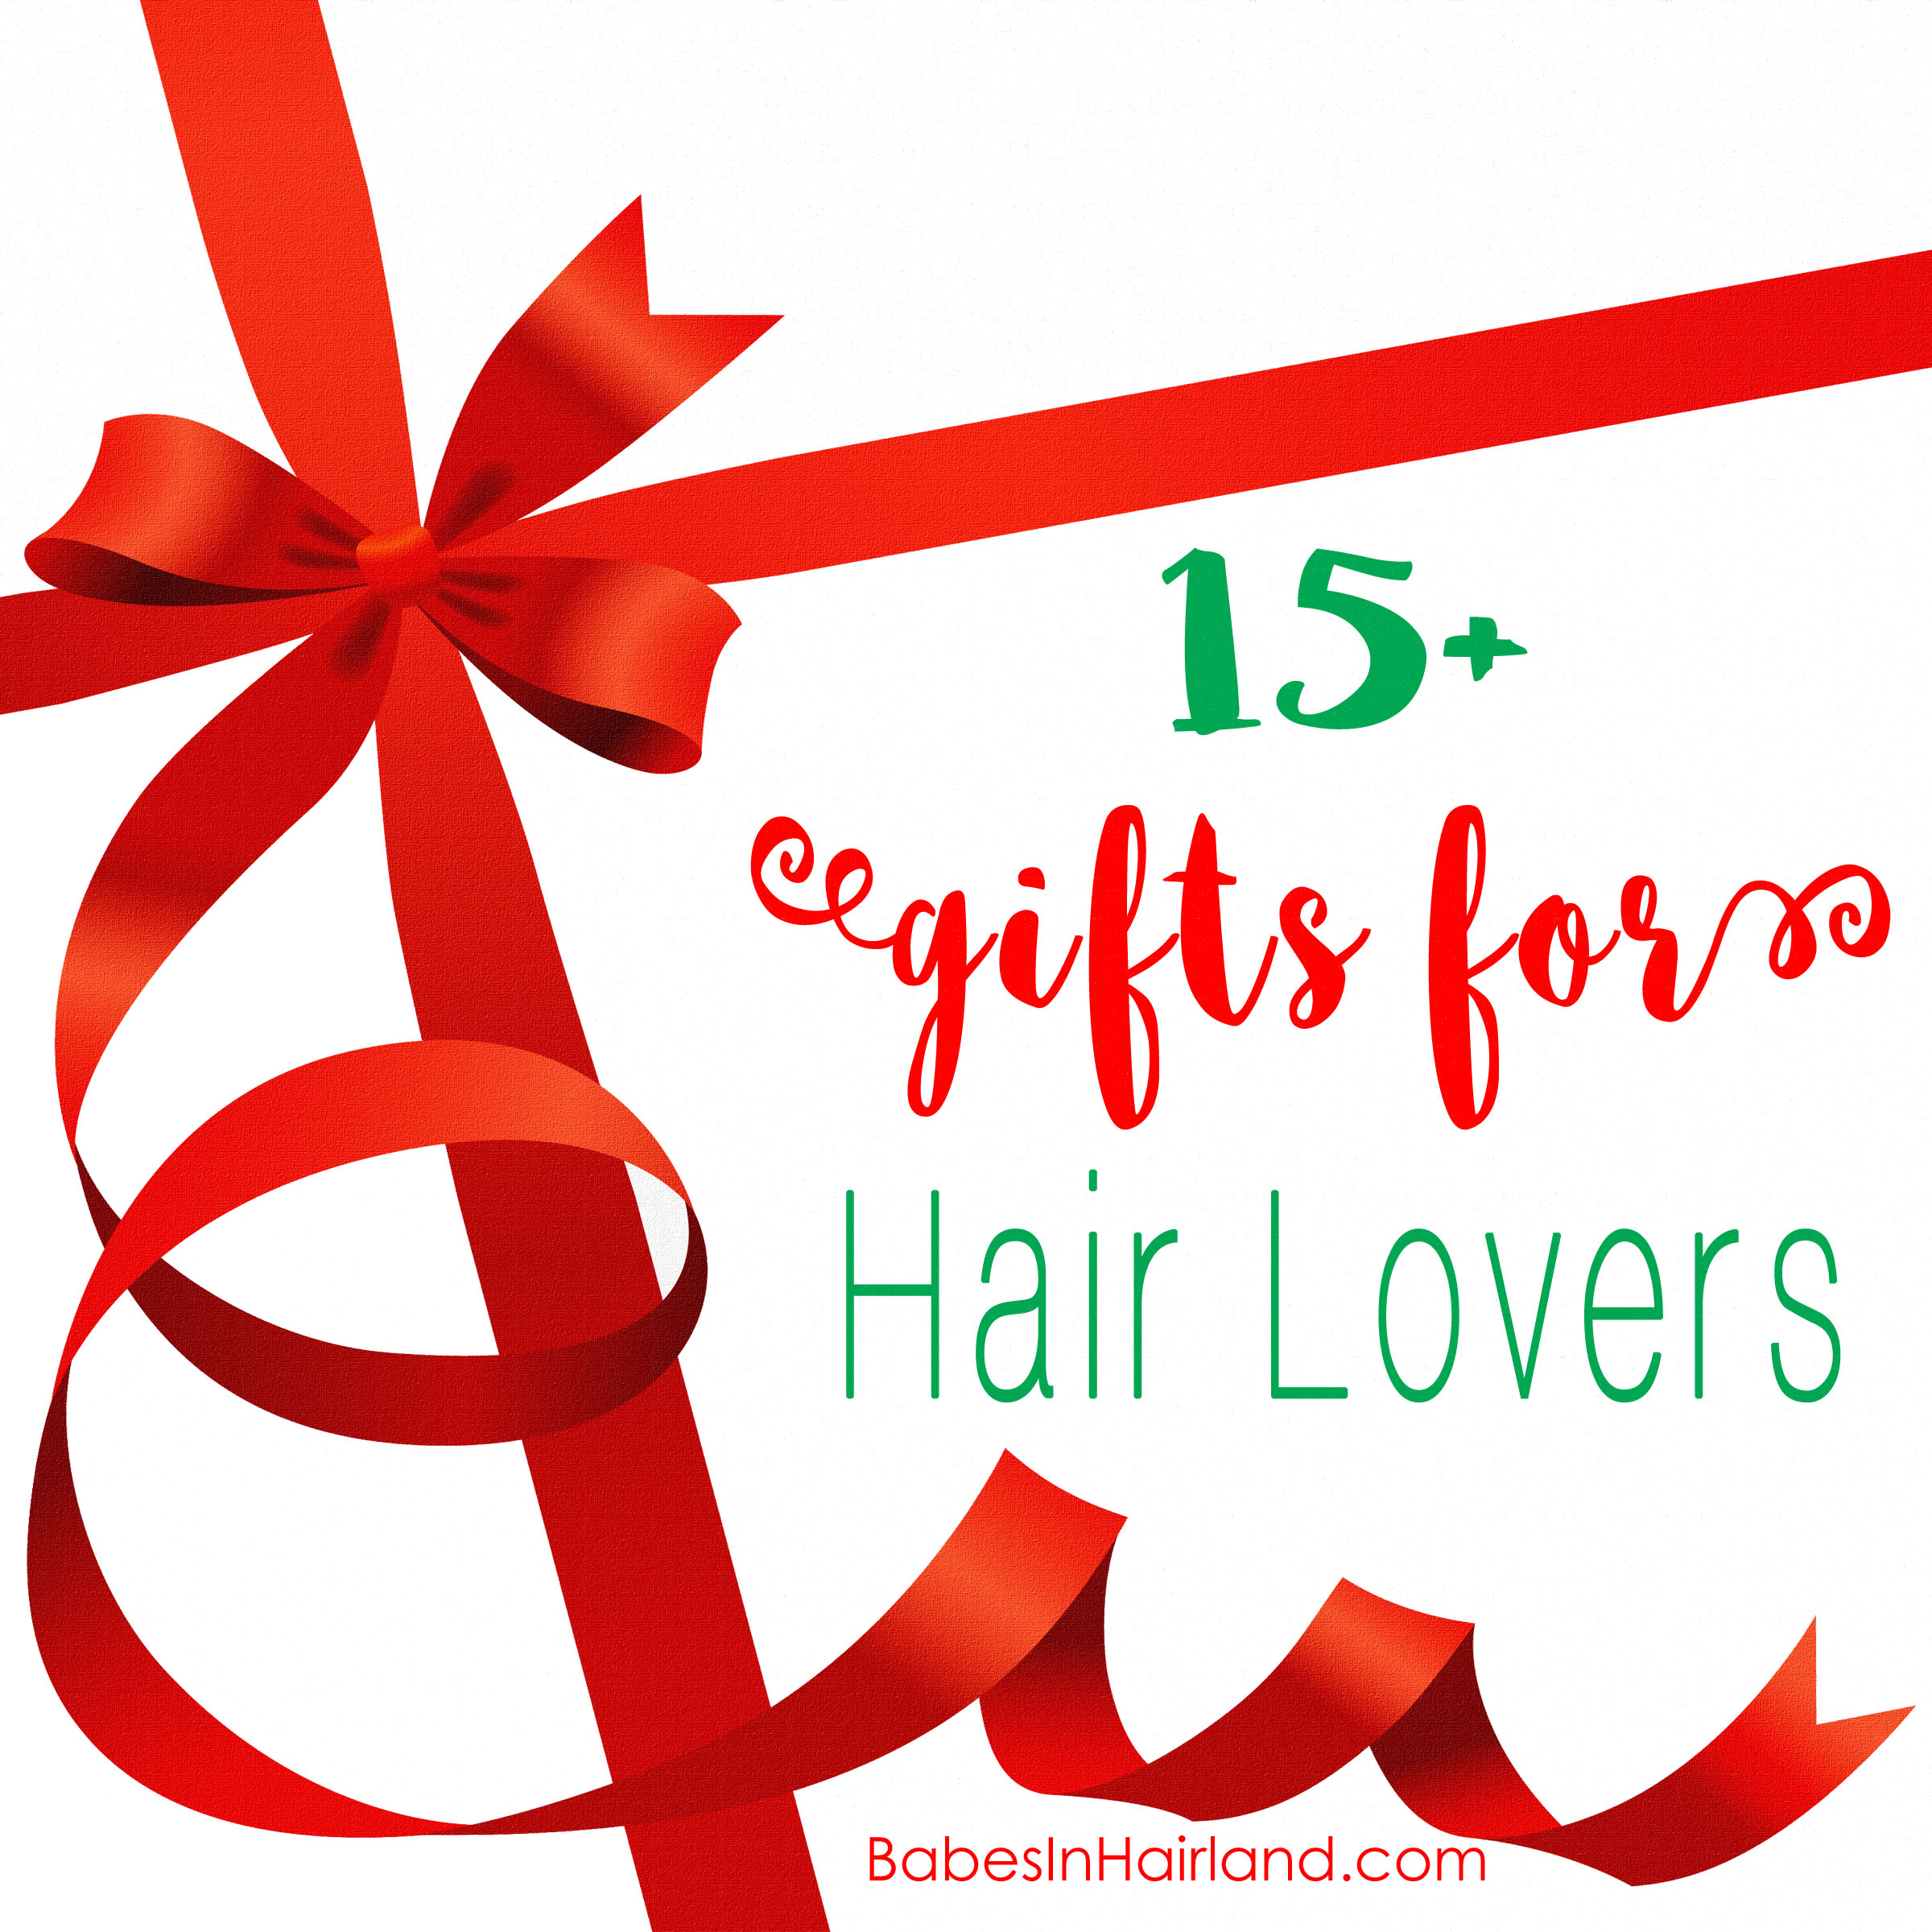 Gifts for Hair Lovers from BabesInHairland.com #christmas #gift #hairlover #giftideas